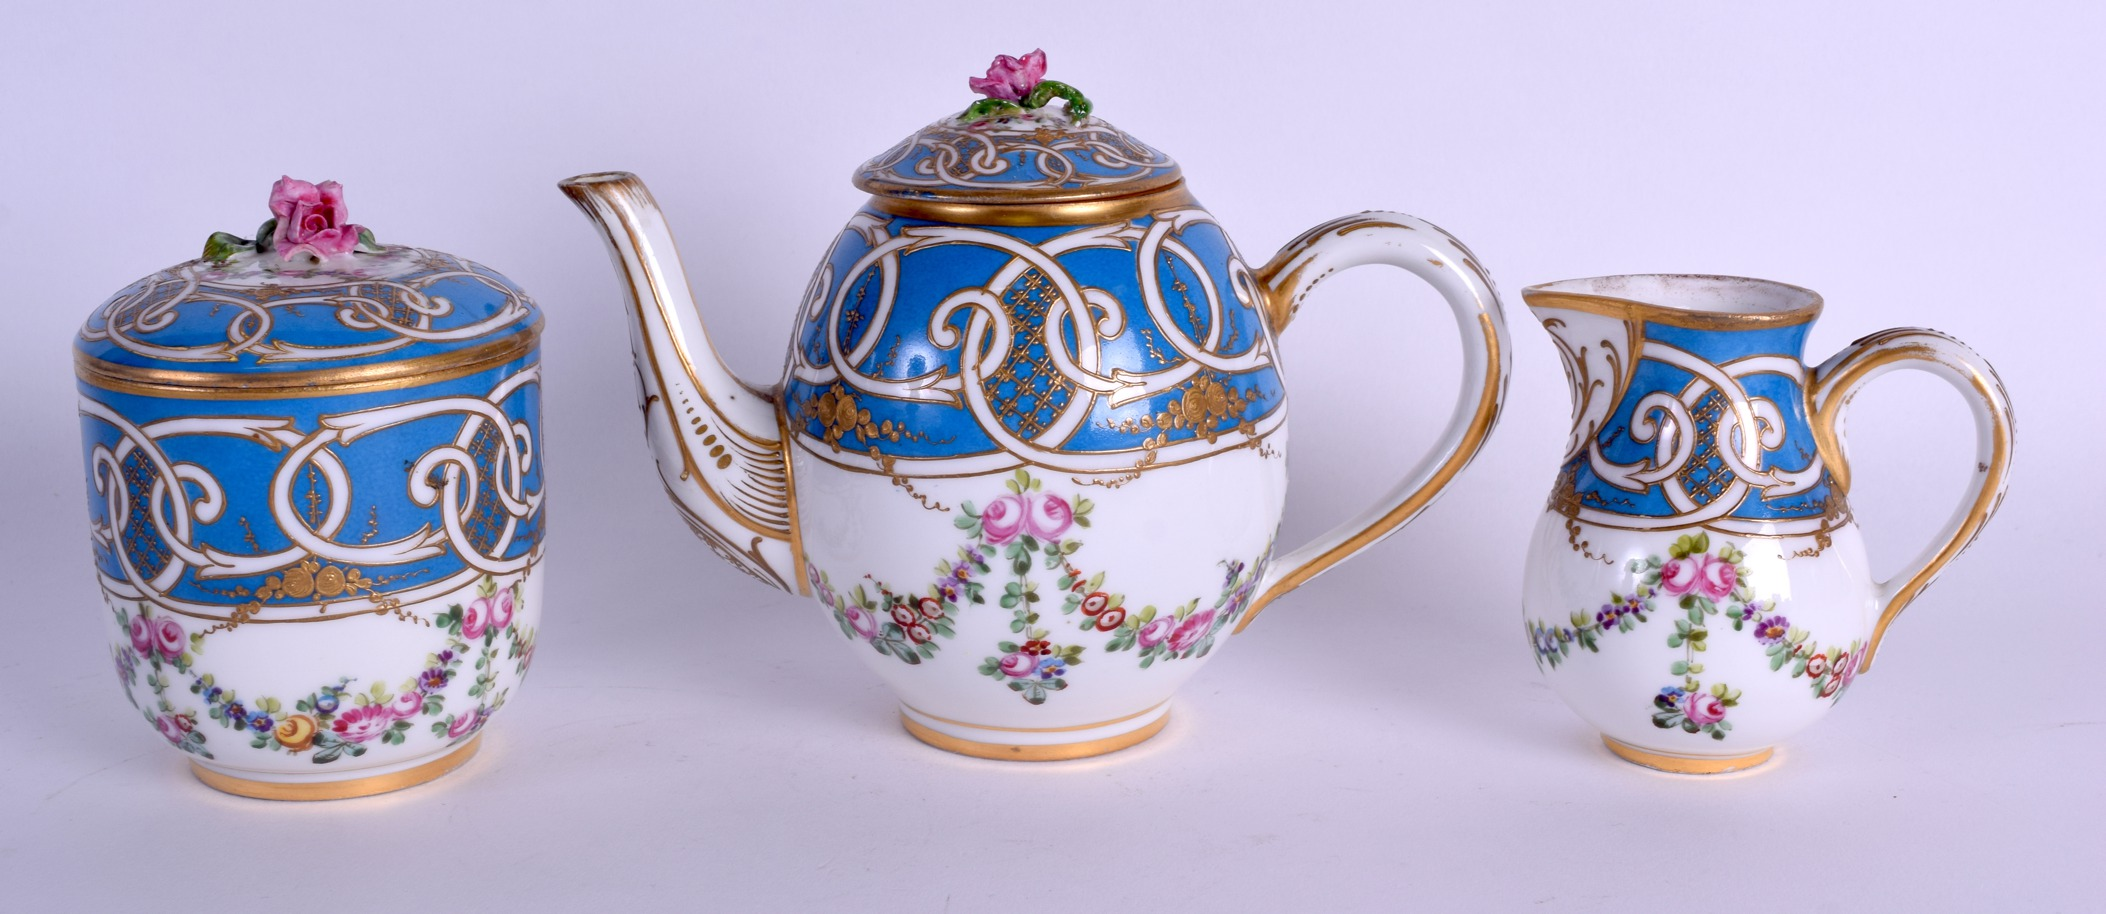 Lot 59 - A GOOD 19TH CENTURY FRENCH PARIS PORCELAIN TETE A TETE TEASET ON TRAY probably Sevres, painted